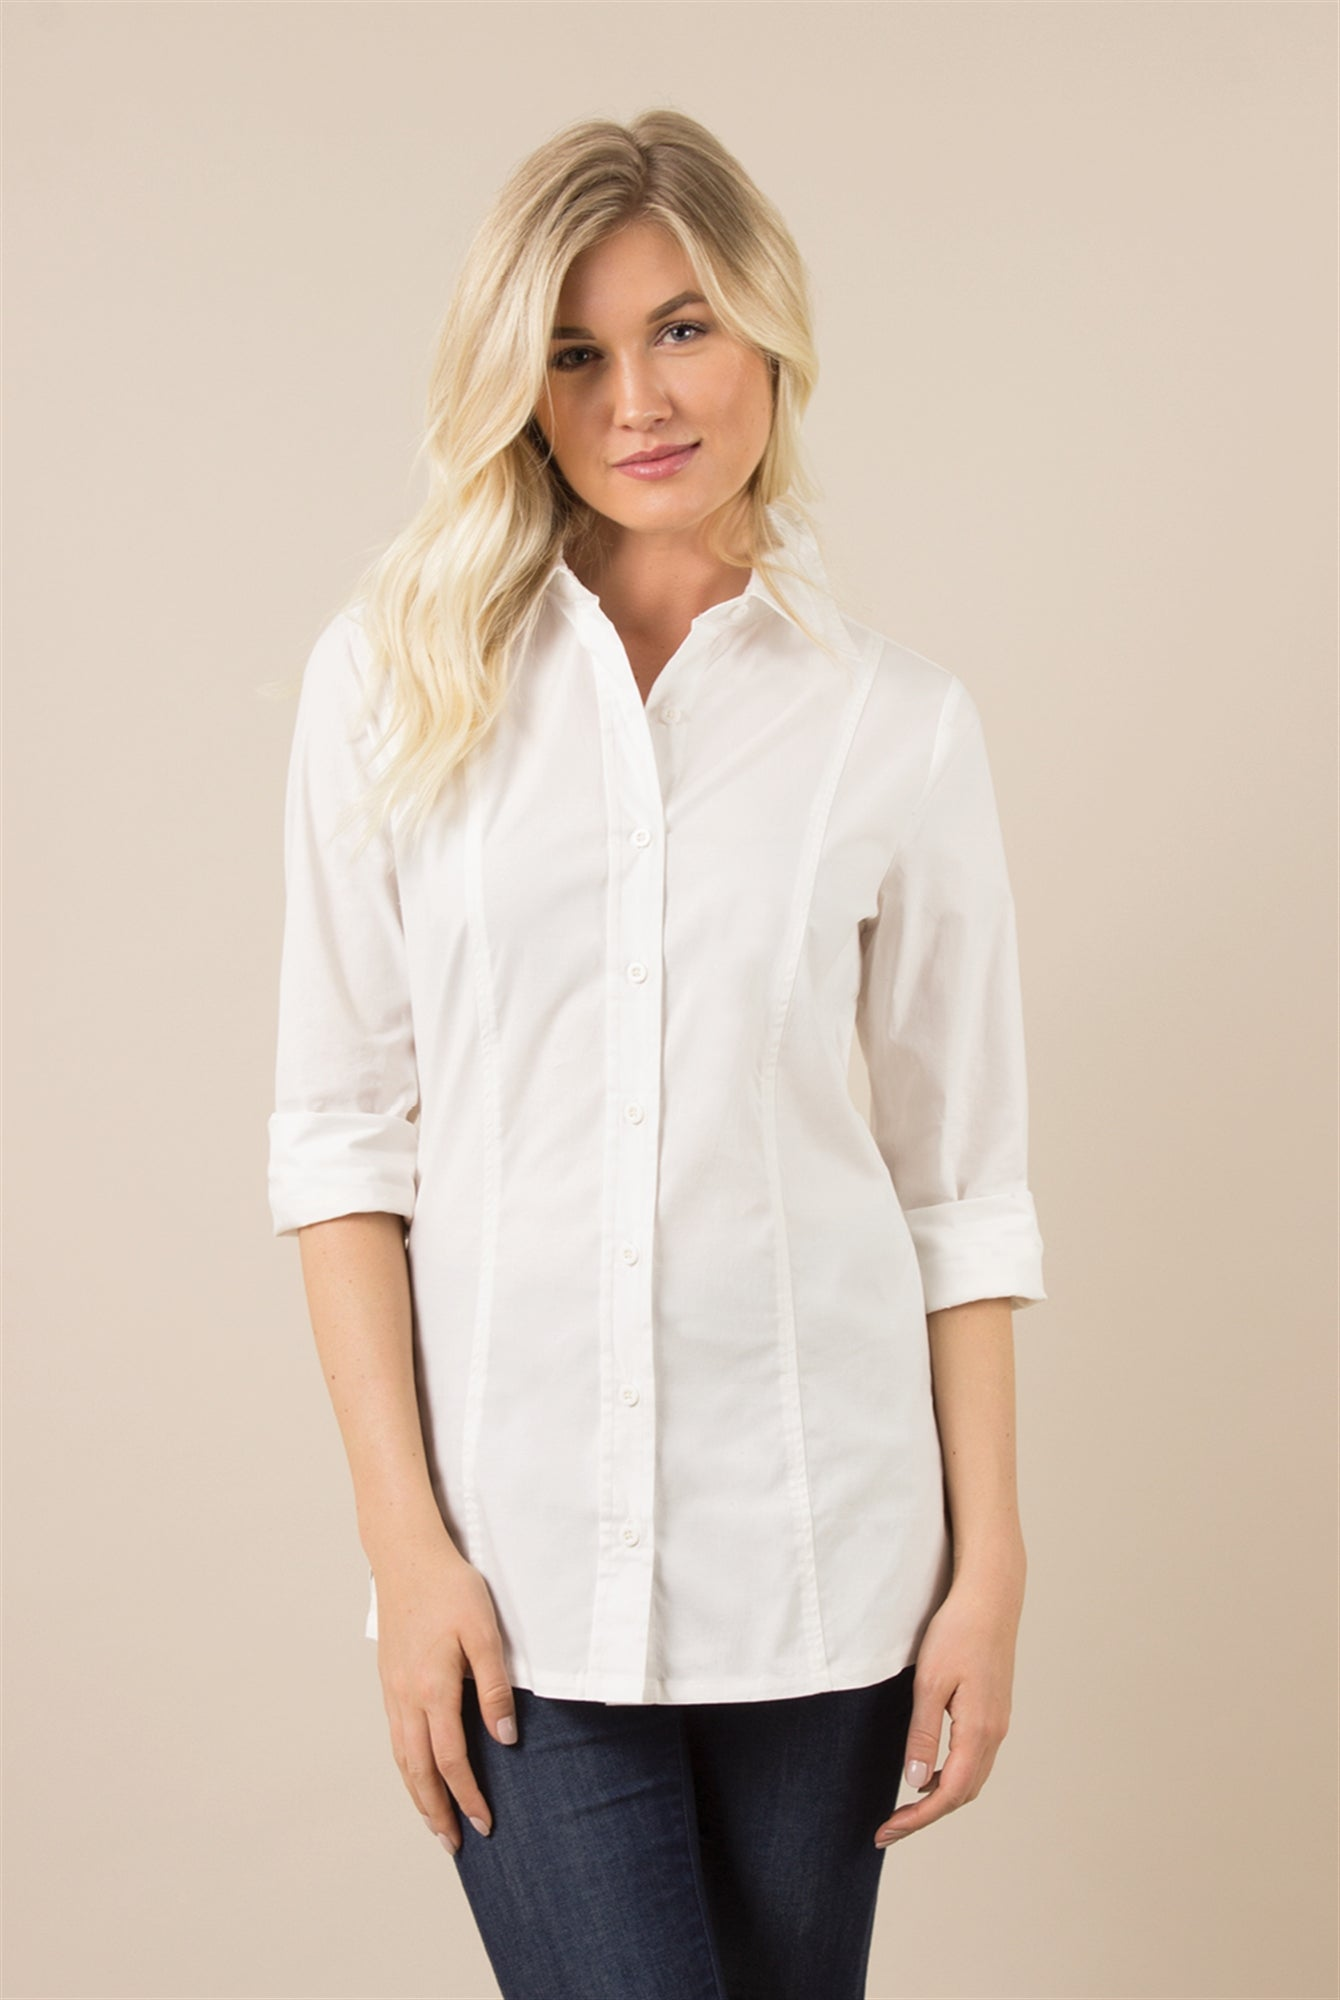 Oxford Flex Top in White